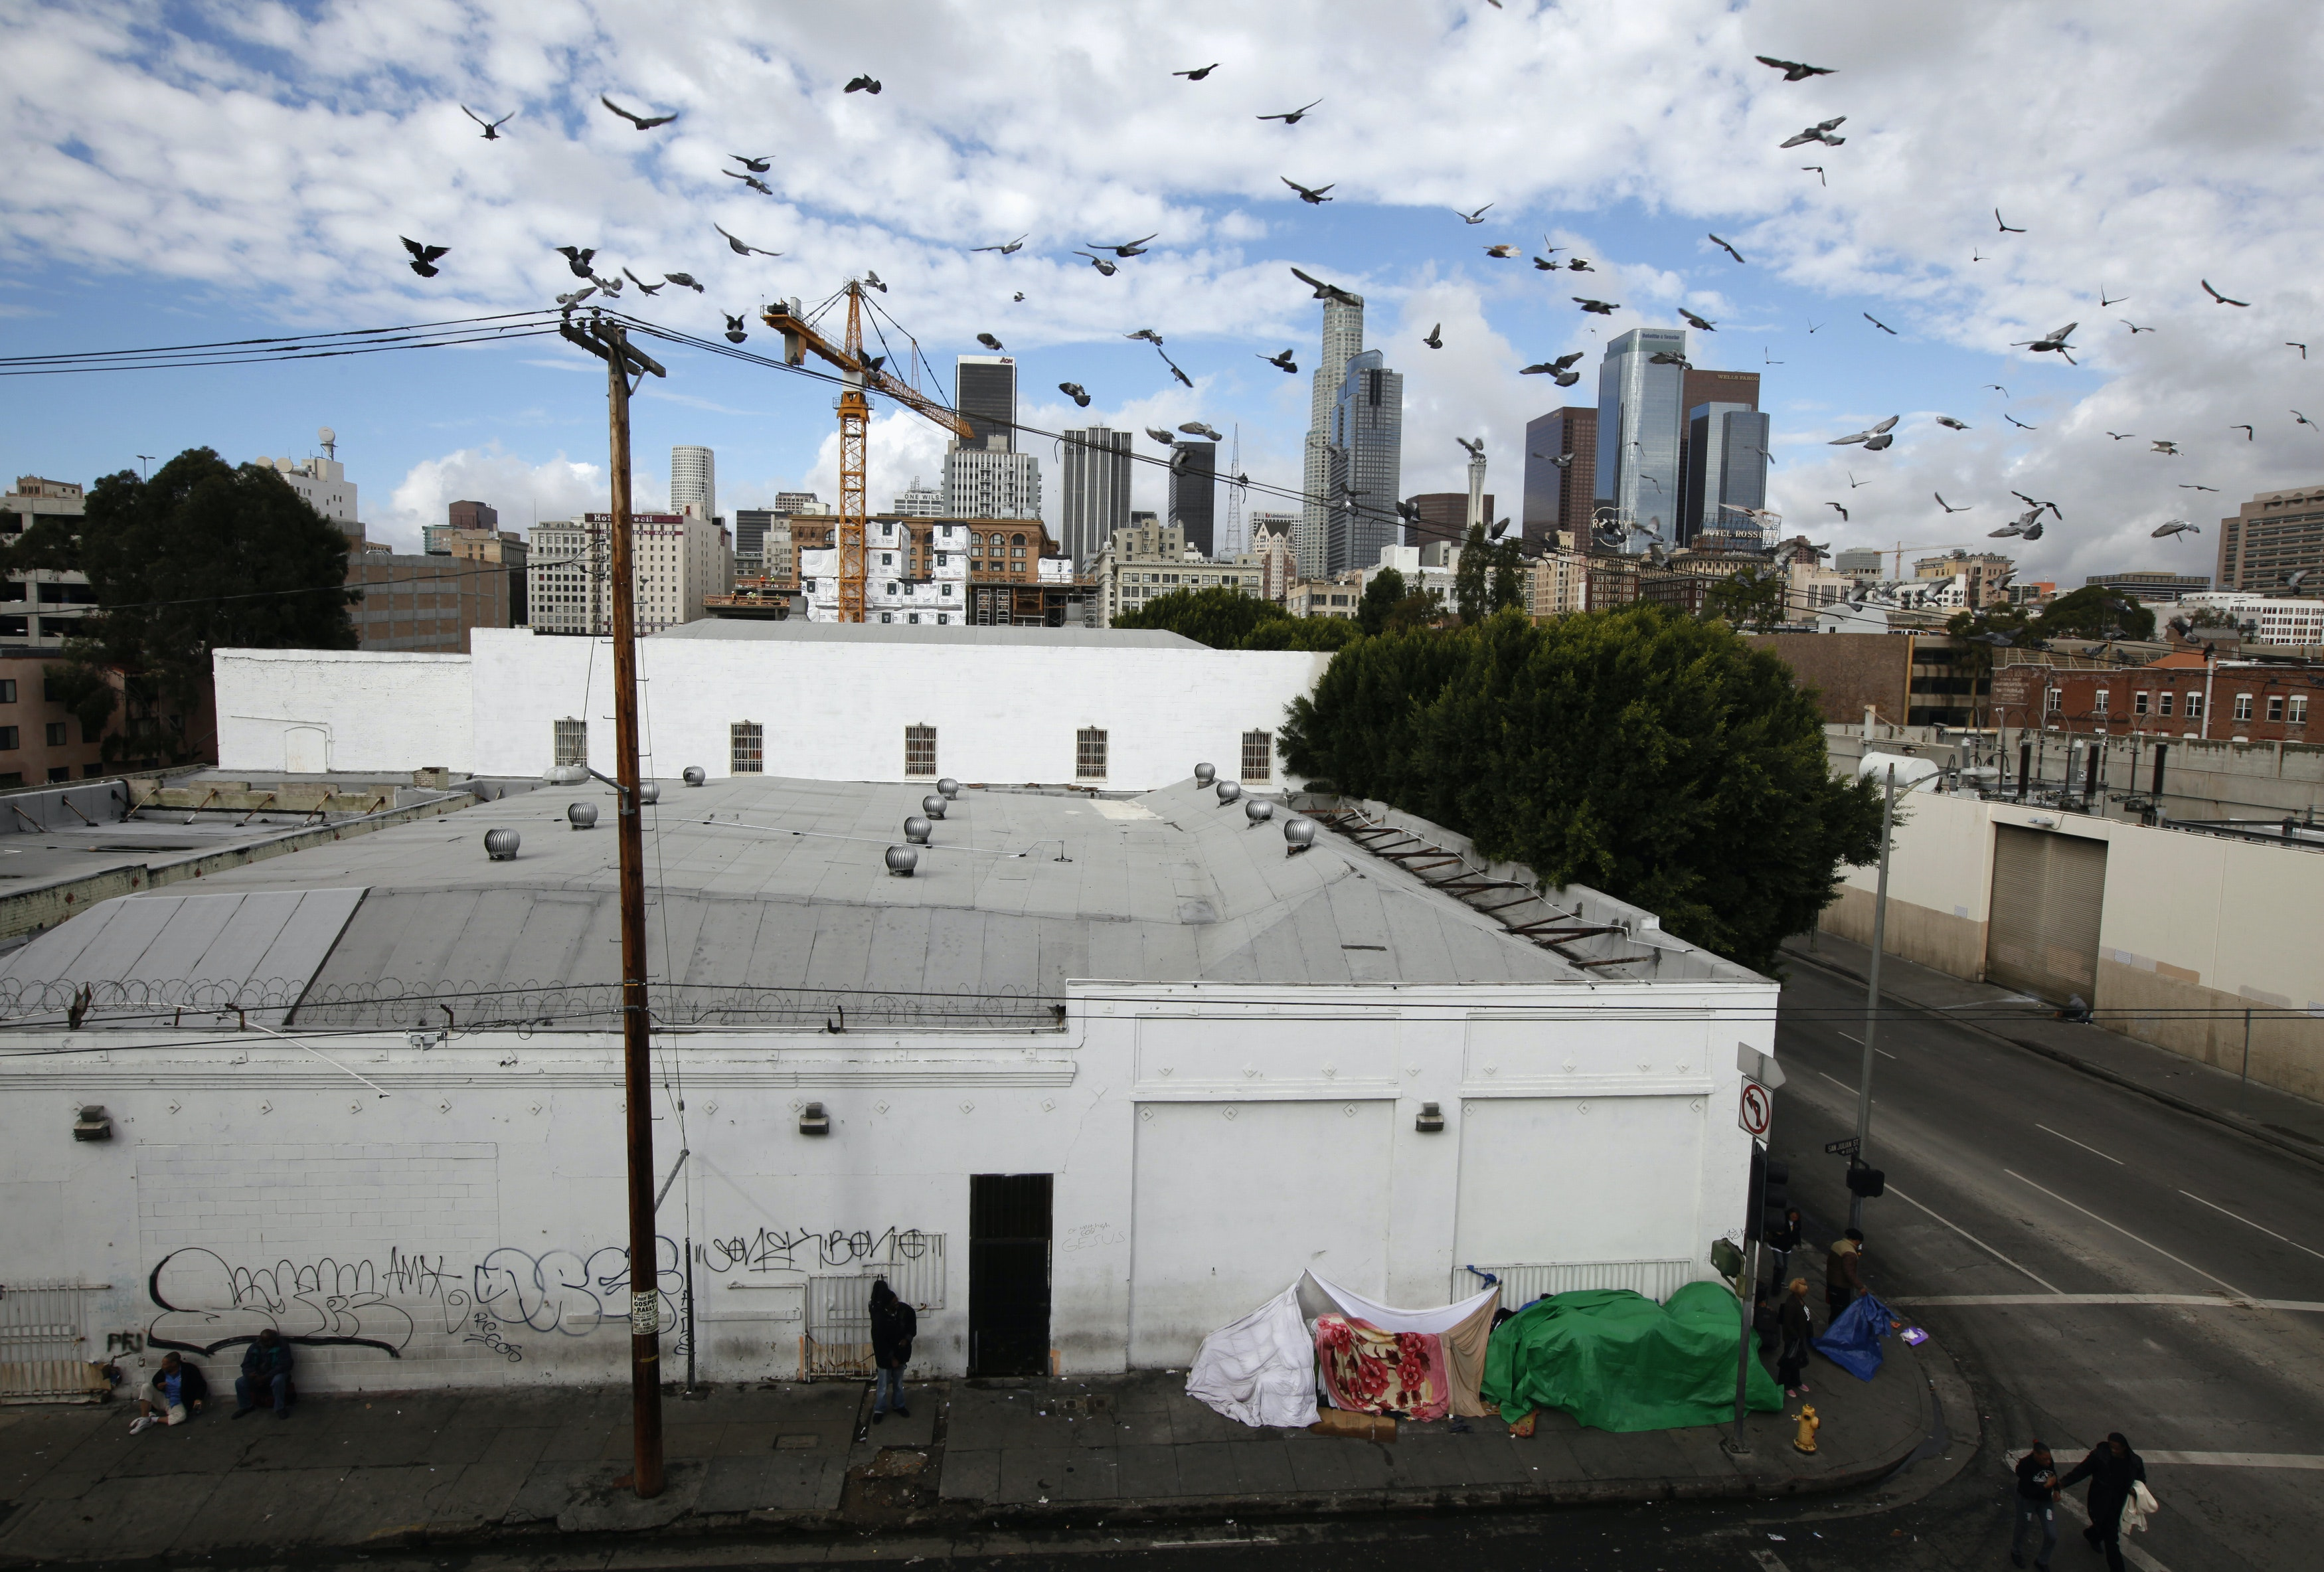 Study: US cities have worse inequality than Mexico, with rich and poor living side by side